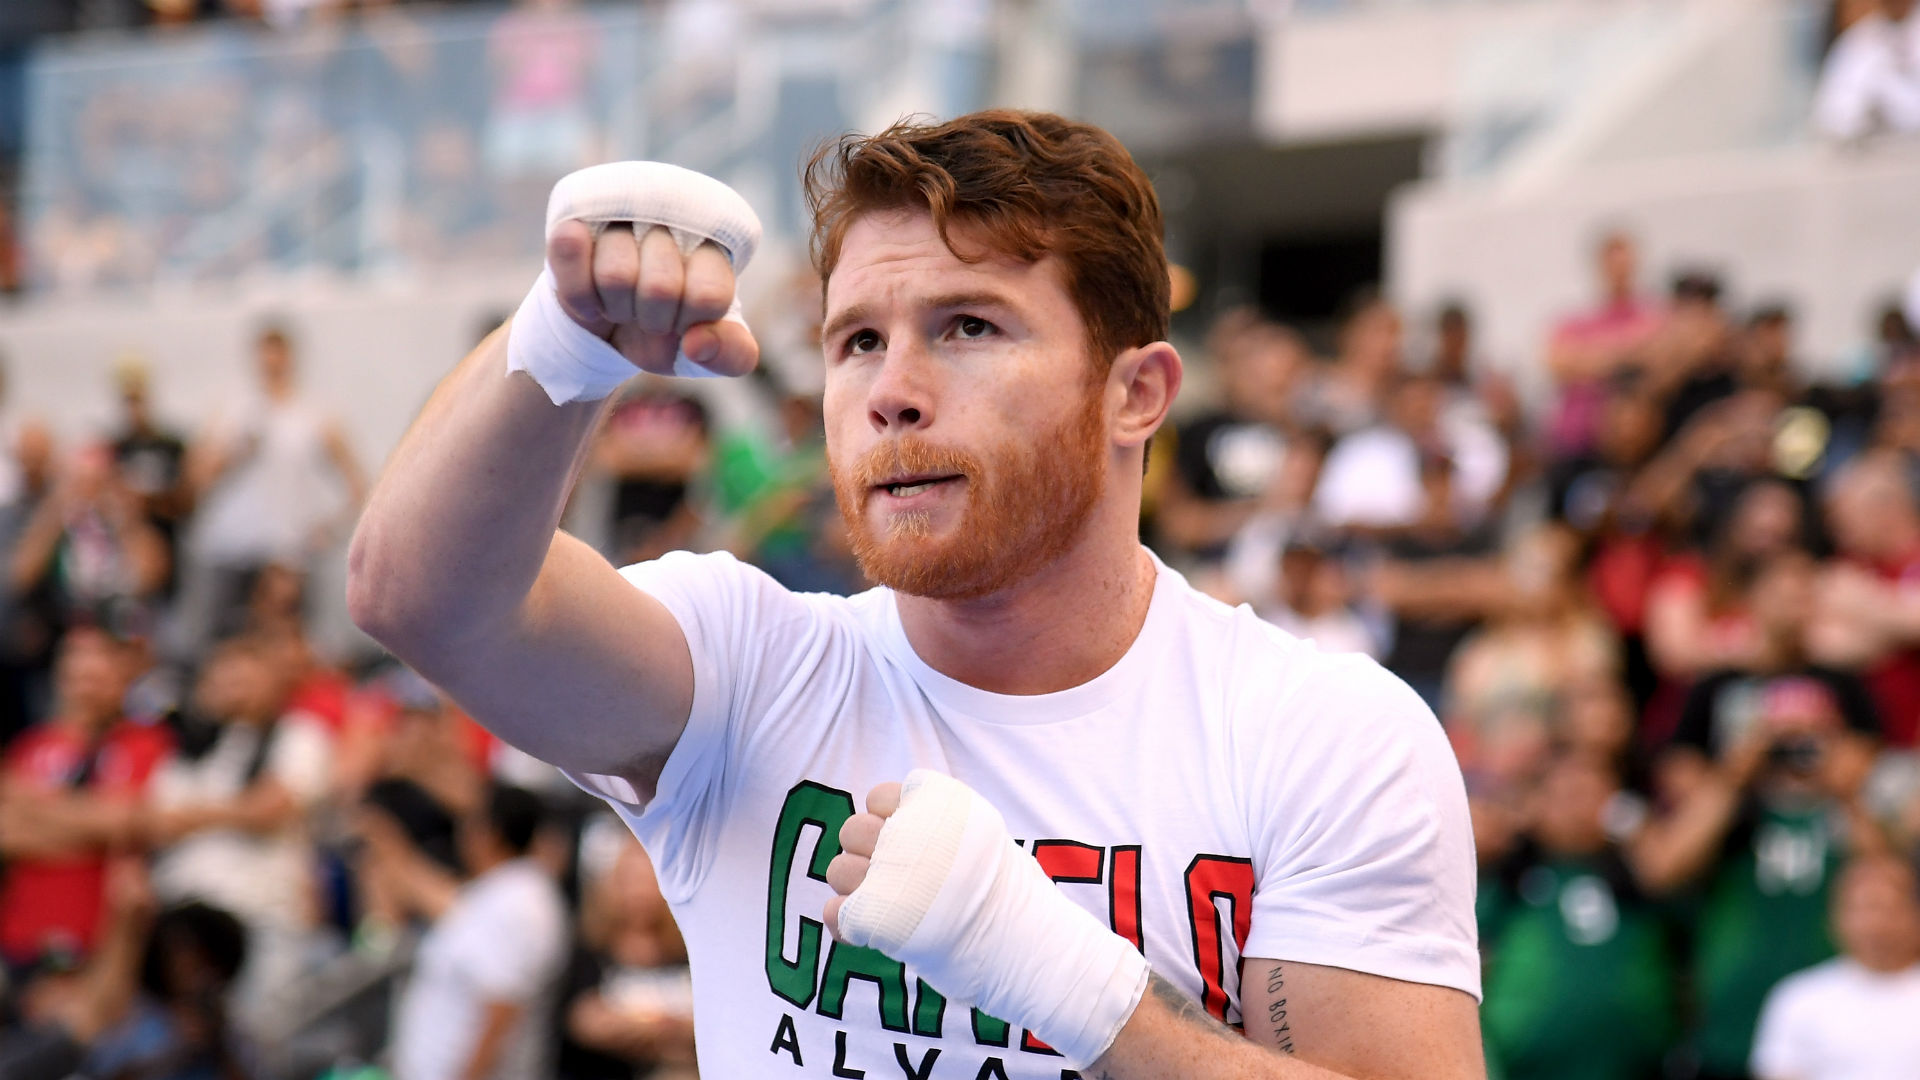 Canelo vs. GGG 2: Canelo's sparring partner, Bilal Akkawy, predicts outcome of rematch